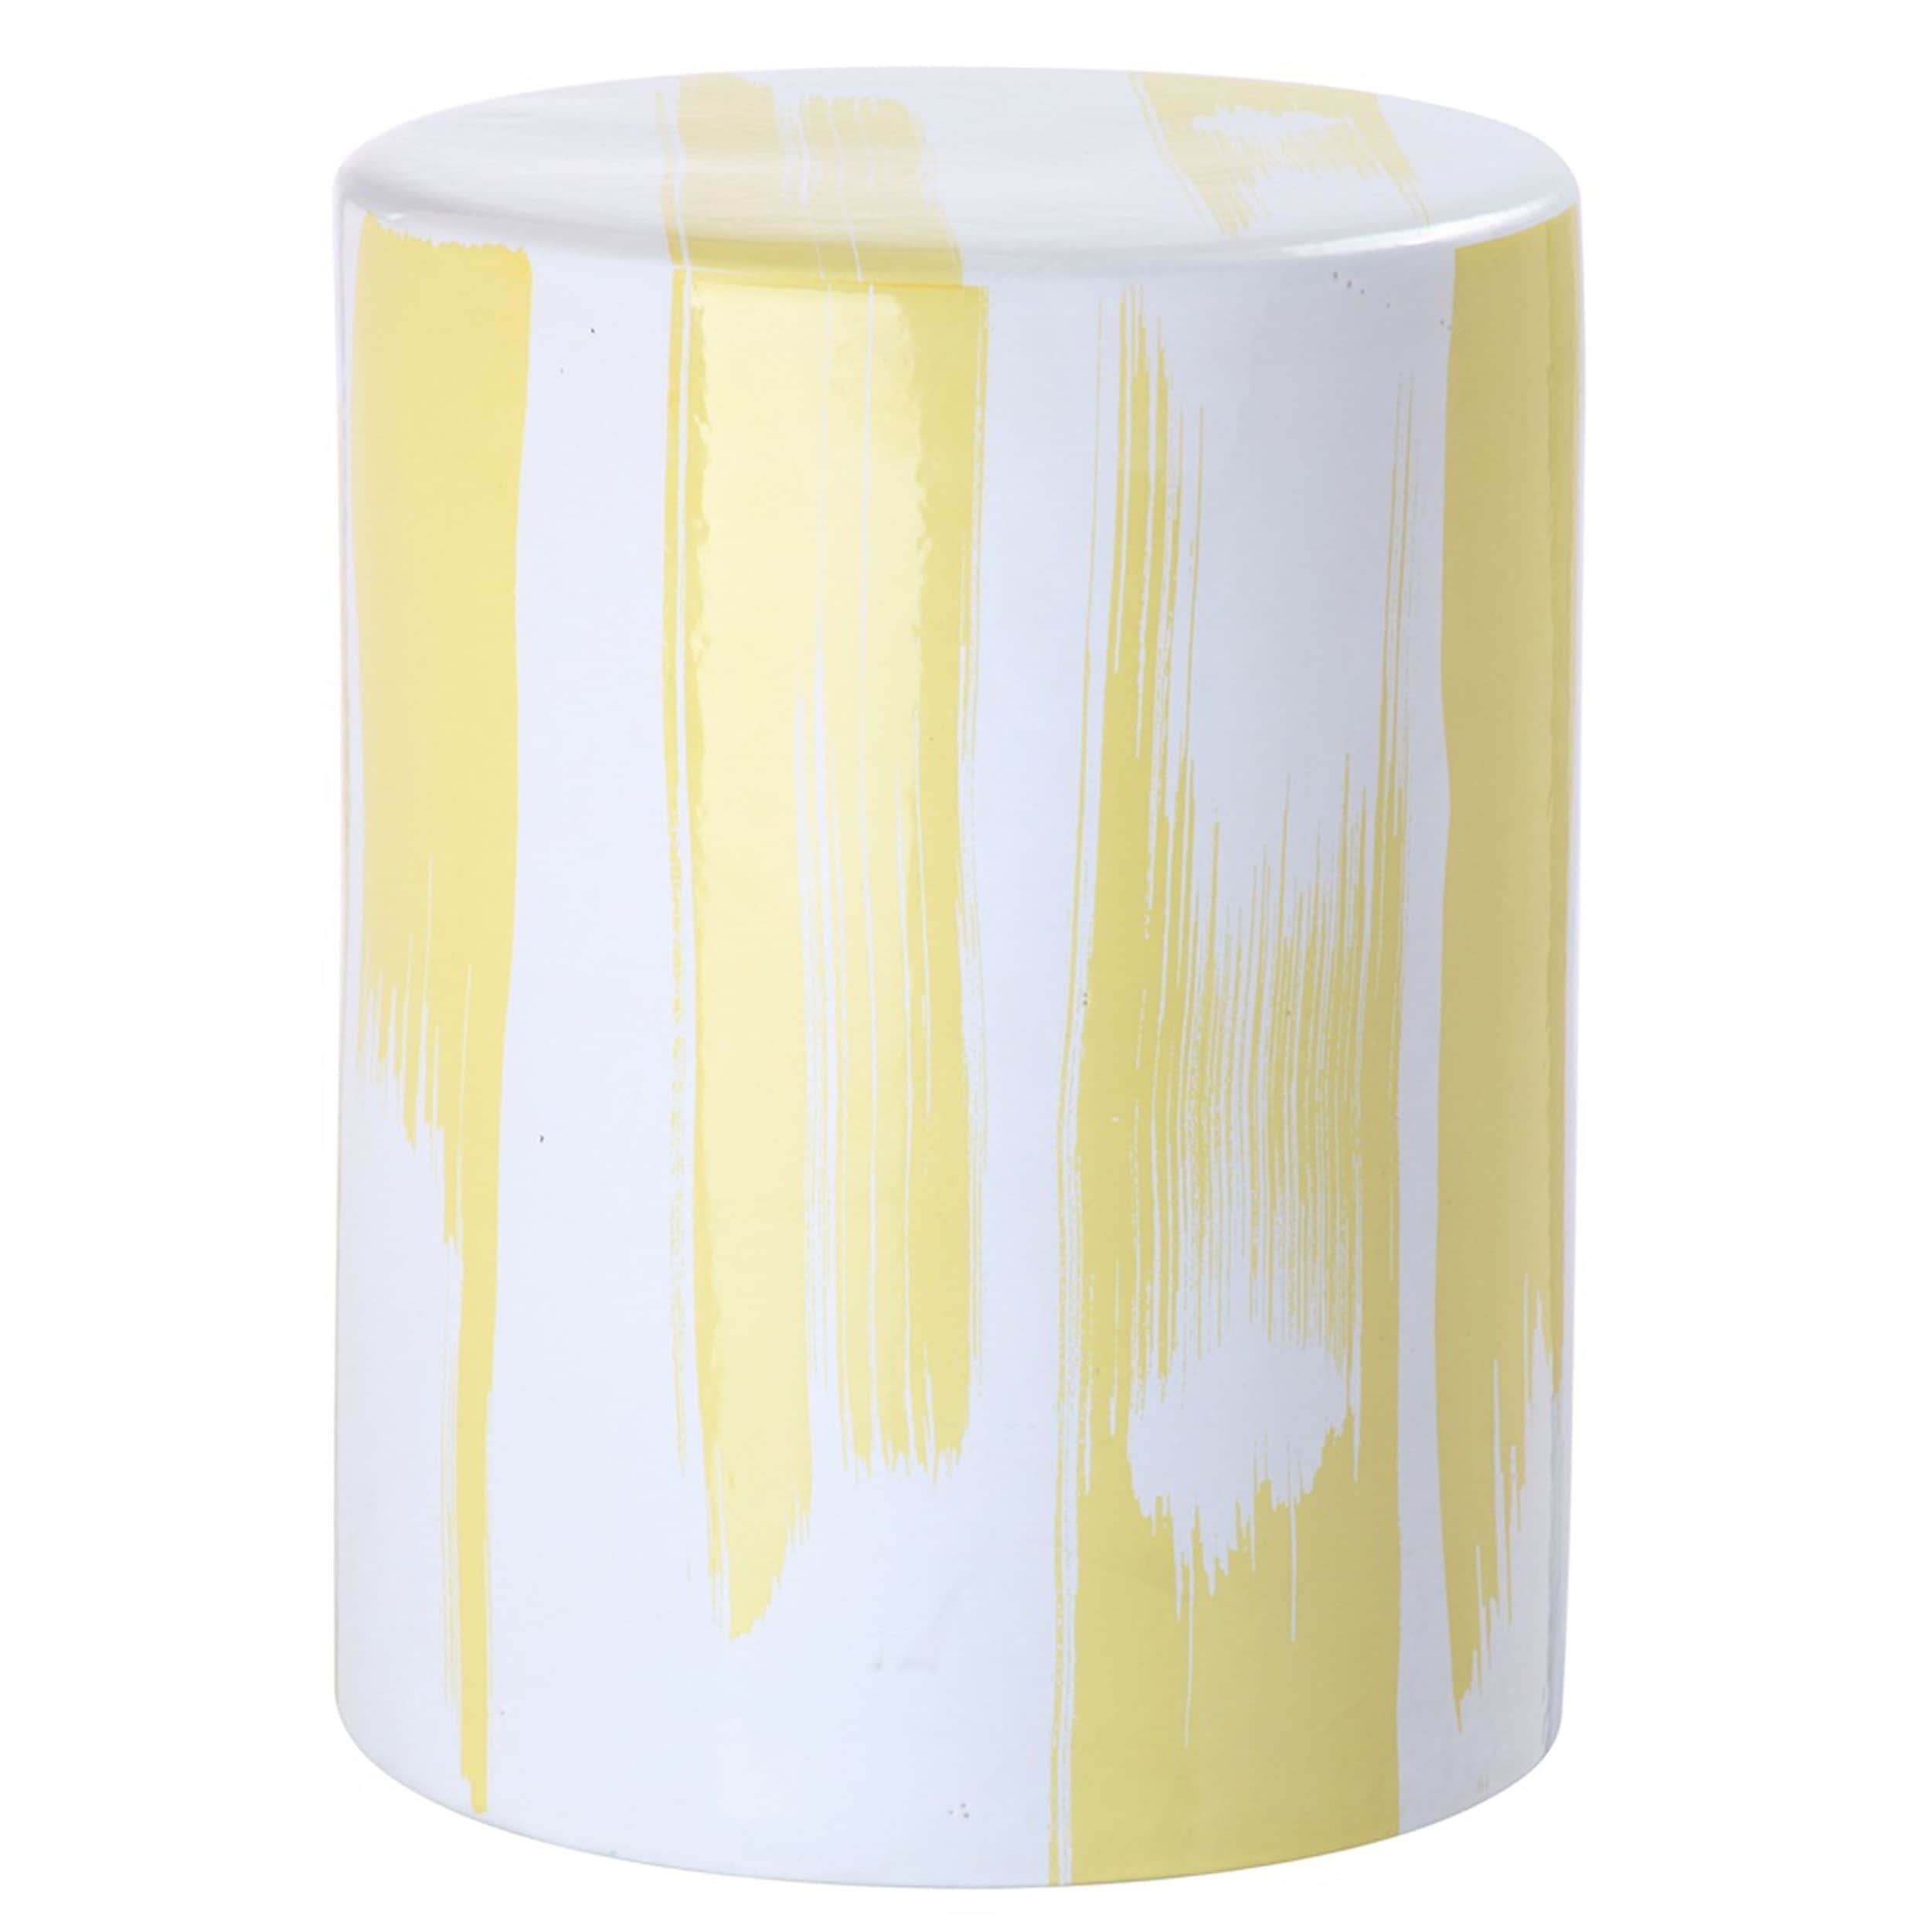 Safavieh Talon Yellow Garden Stool 13 X 17 On Free Shipping Today 14593261